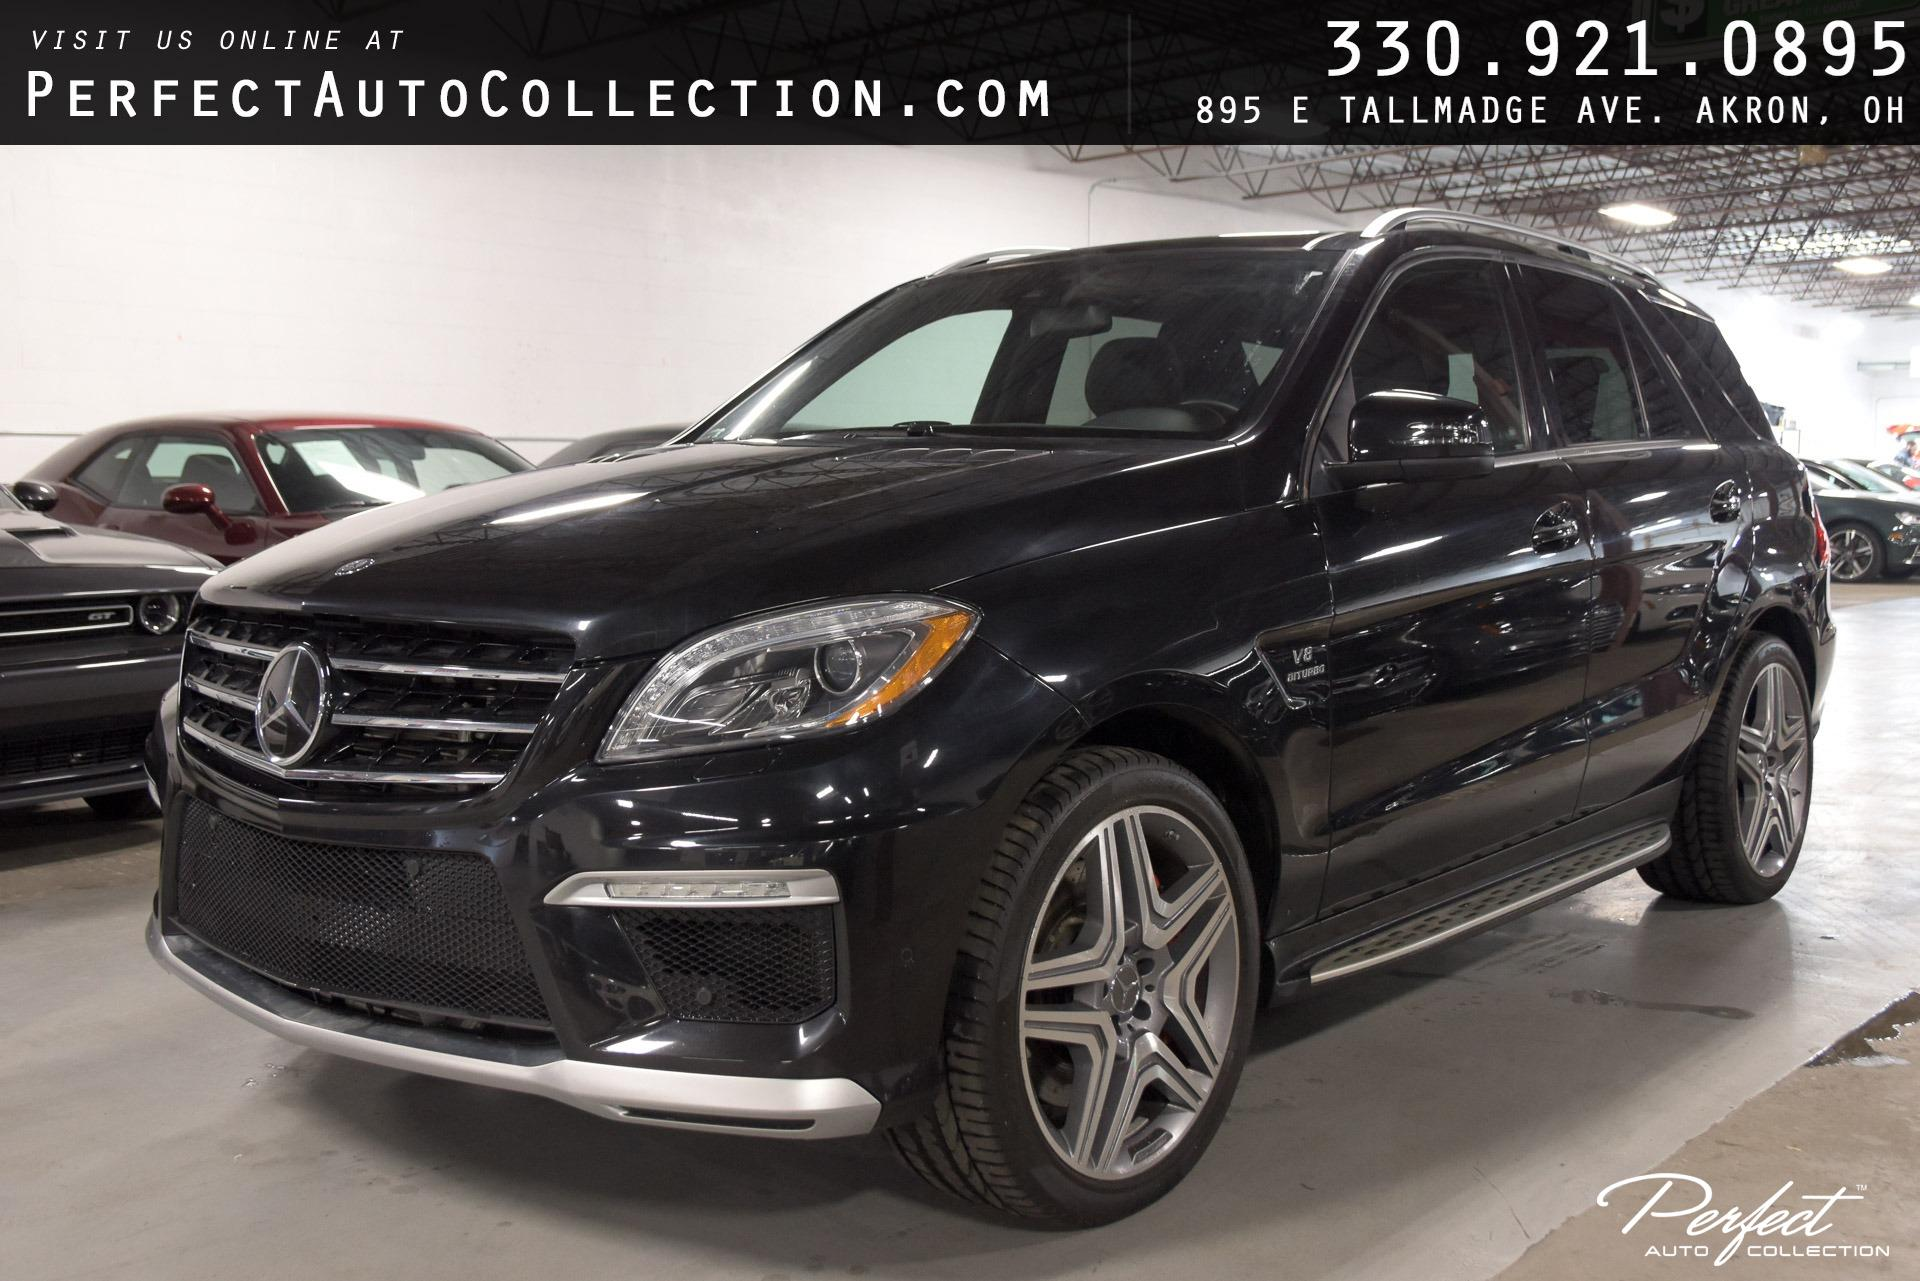 Used 2012 Mercedes-Benz M-Class ML 63 AMG for sale $37,895 at Perfect Auto Collection in Akron OH 44310 1